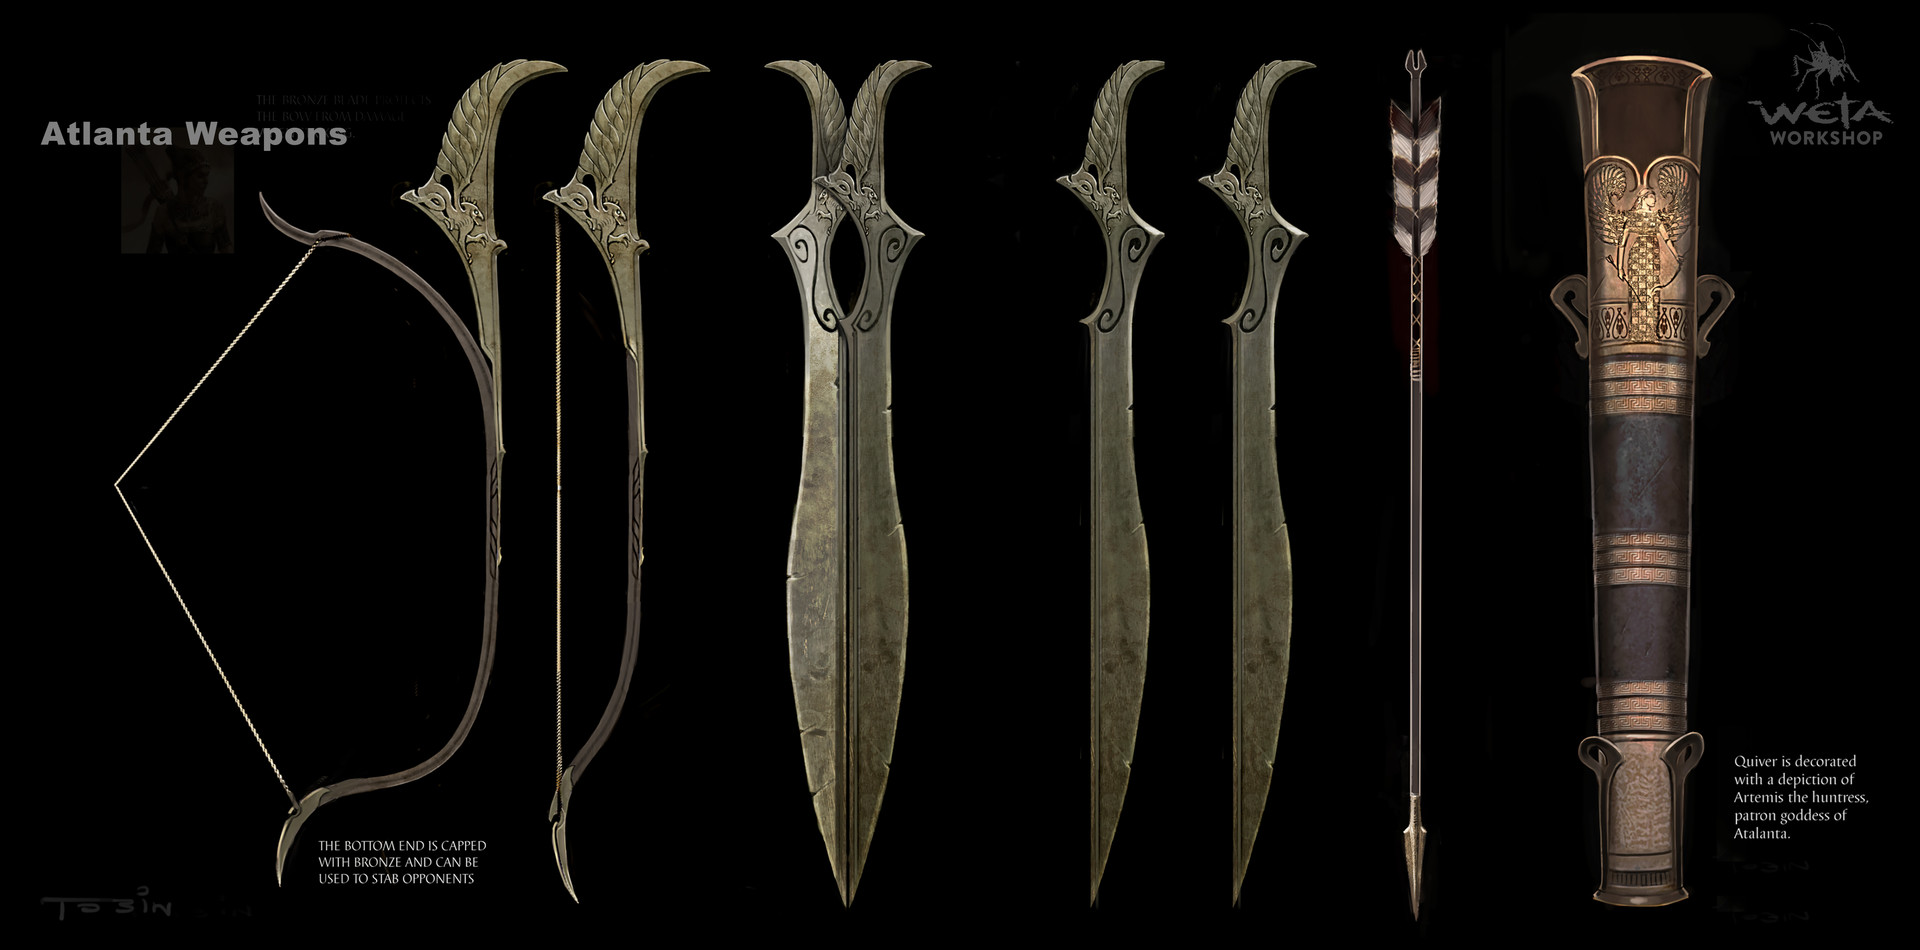 Weta workshop design studio weta workshop design studio atalanta weapons